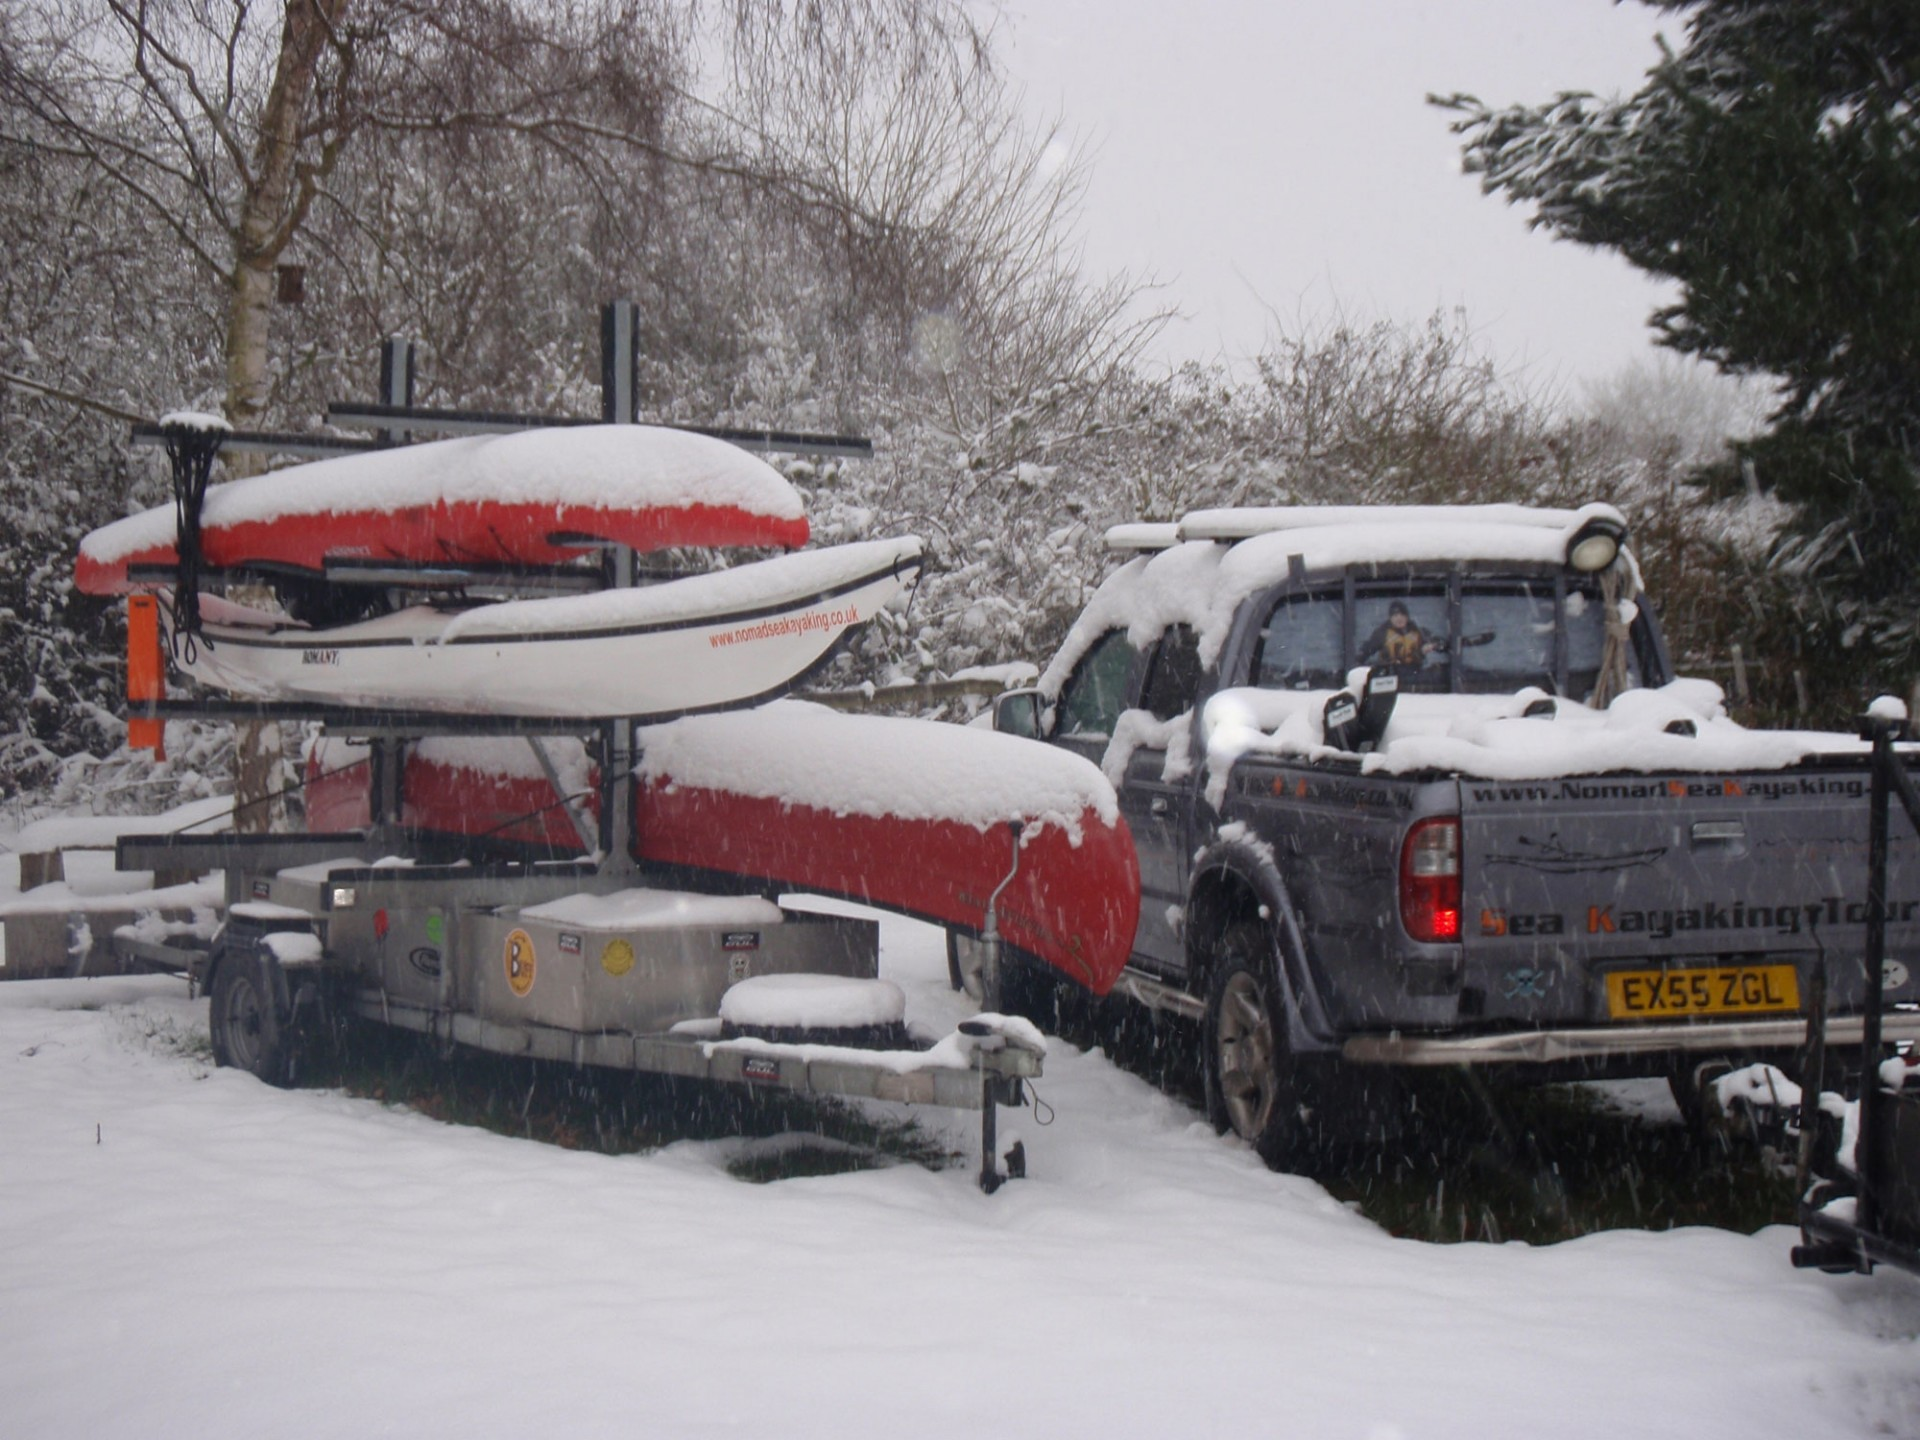 Kayaks on a trailer covered in snow